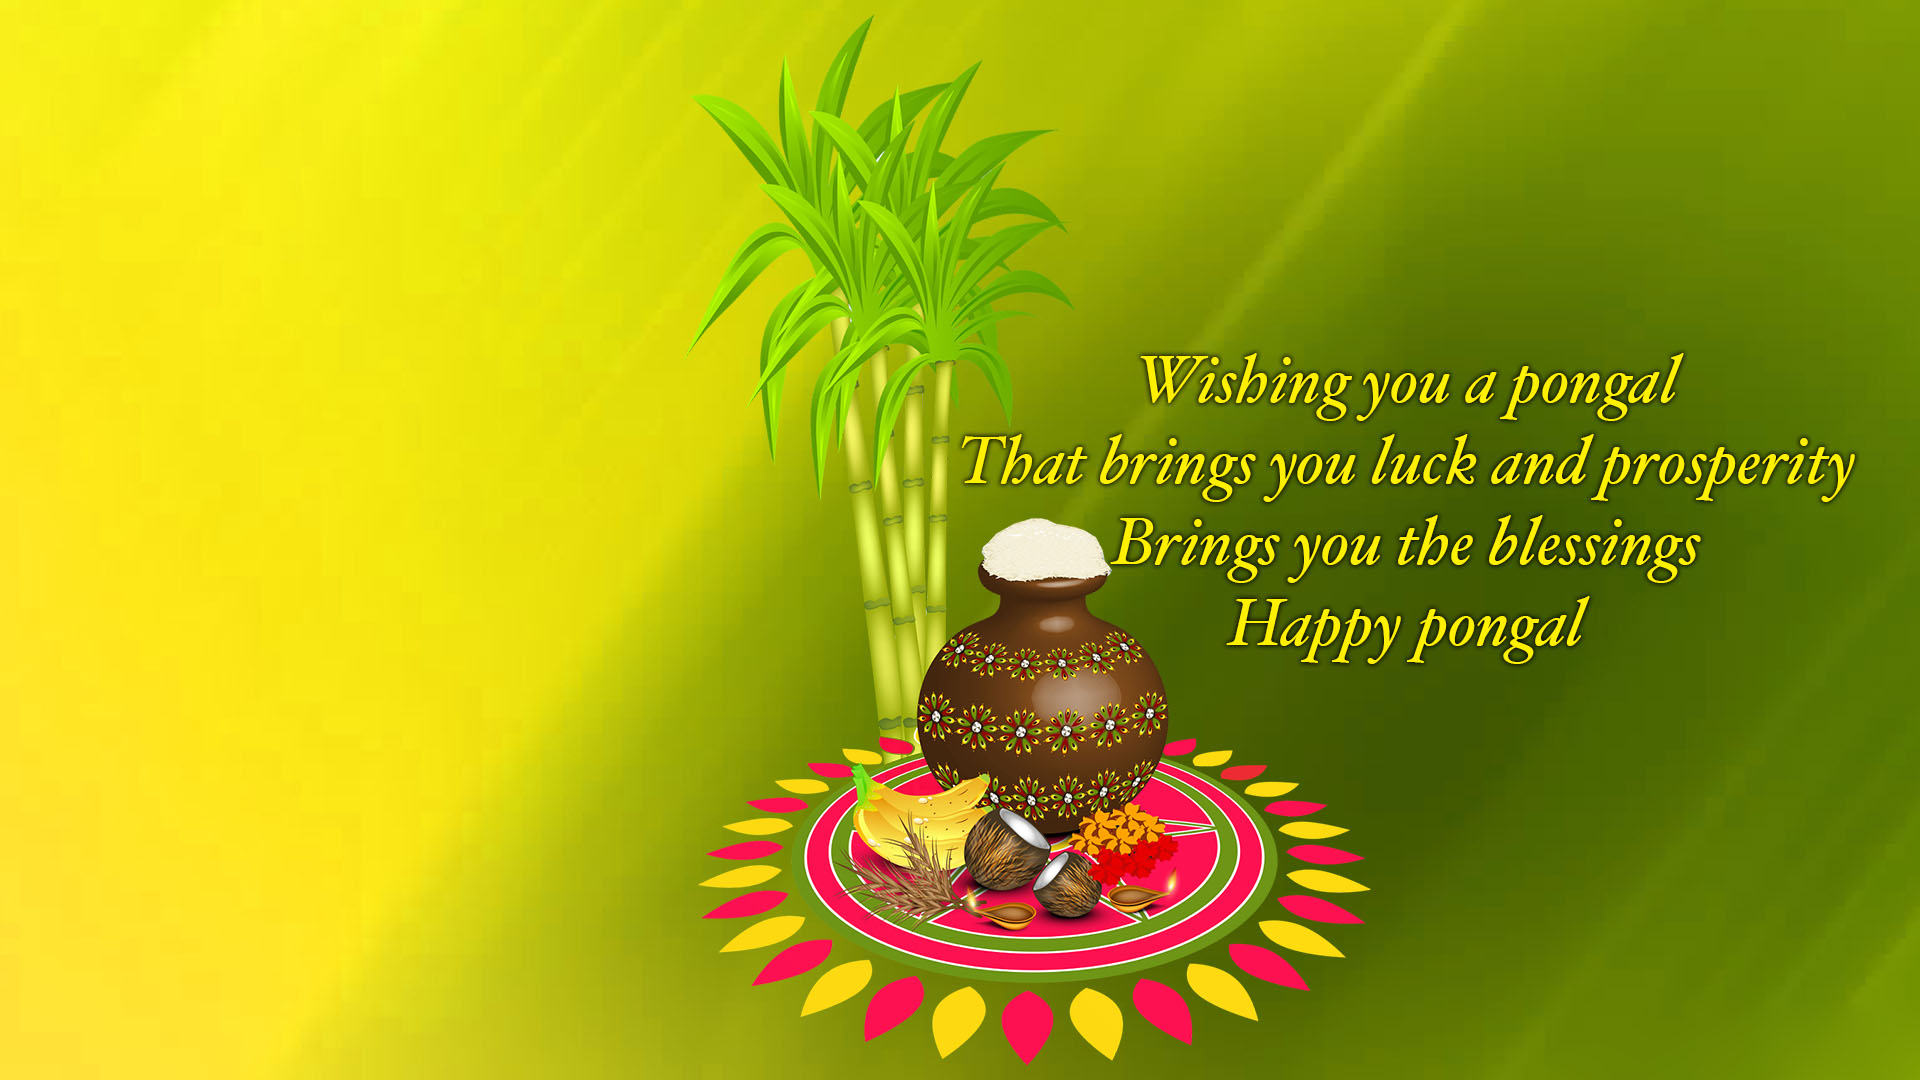 Happy Pongal Wallpapers High Quality Download